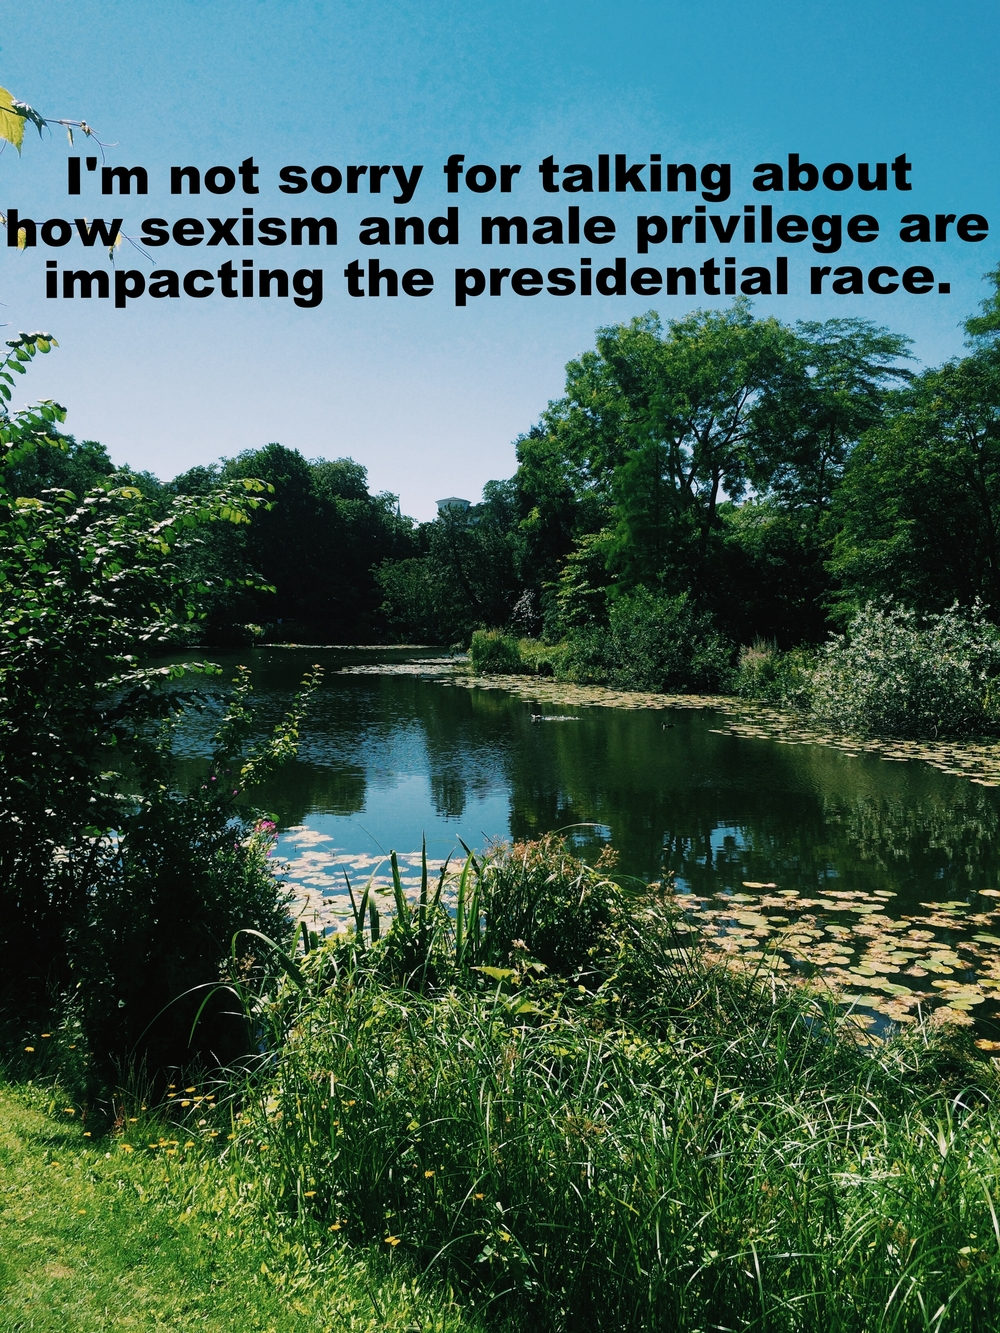 "Meghan March 4 2016 Image of a still pond with lillypads in it and green grass and trees surrounding it. ""I'm not sorry for talking about how sexism and male privilege are impacting the presidential race"" is overlaid."